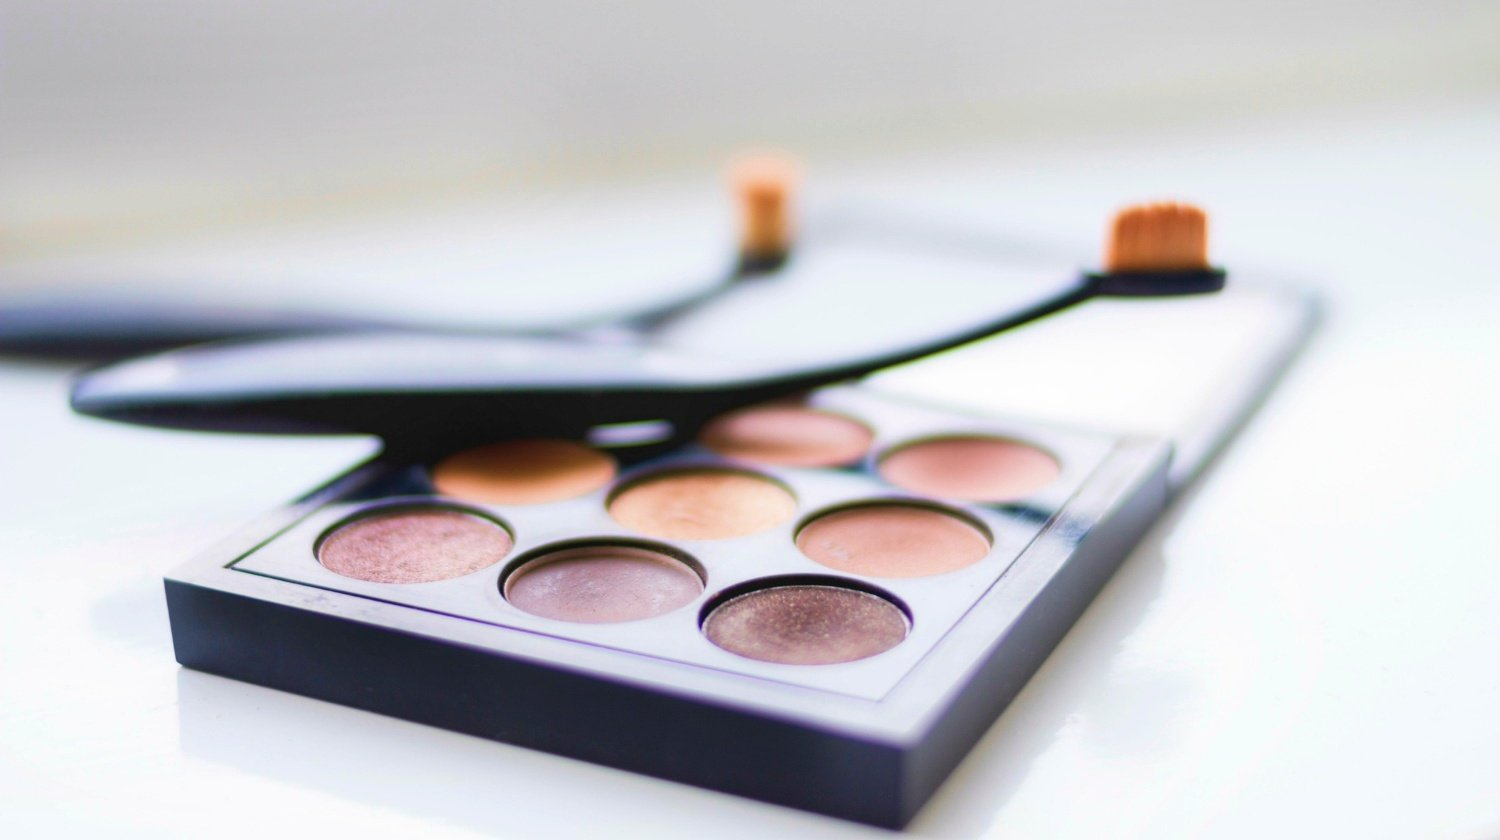 10 Celebrity Makeup Brands You Need to Know